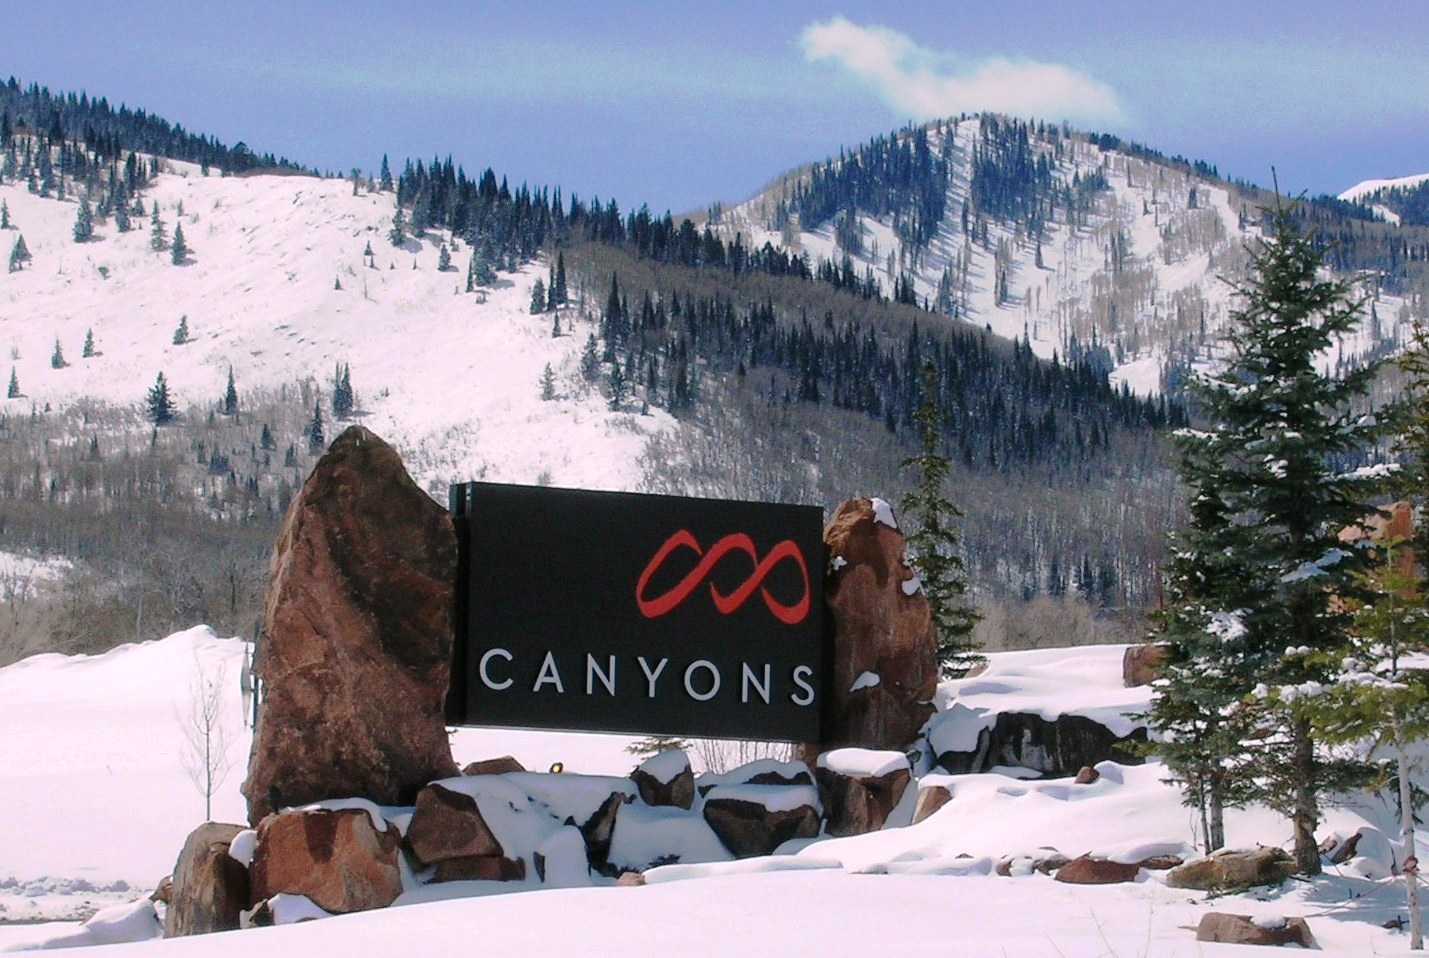 ski paradise: vail resorts to operate canyons resort in park city, utah